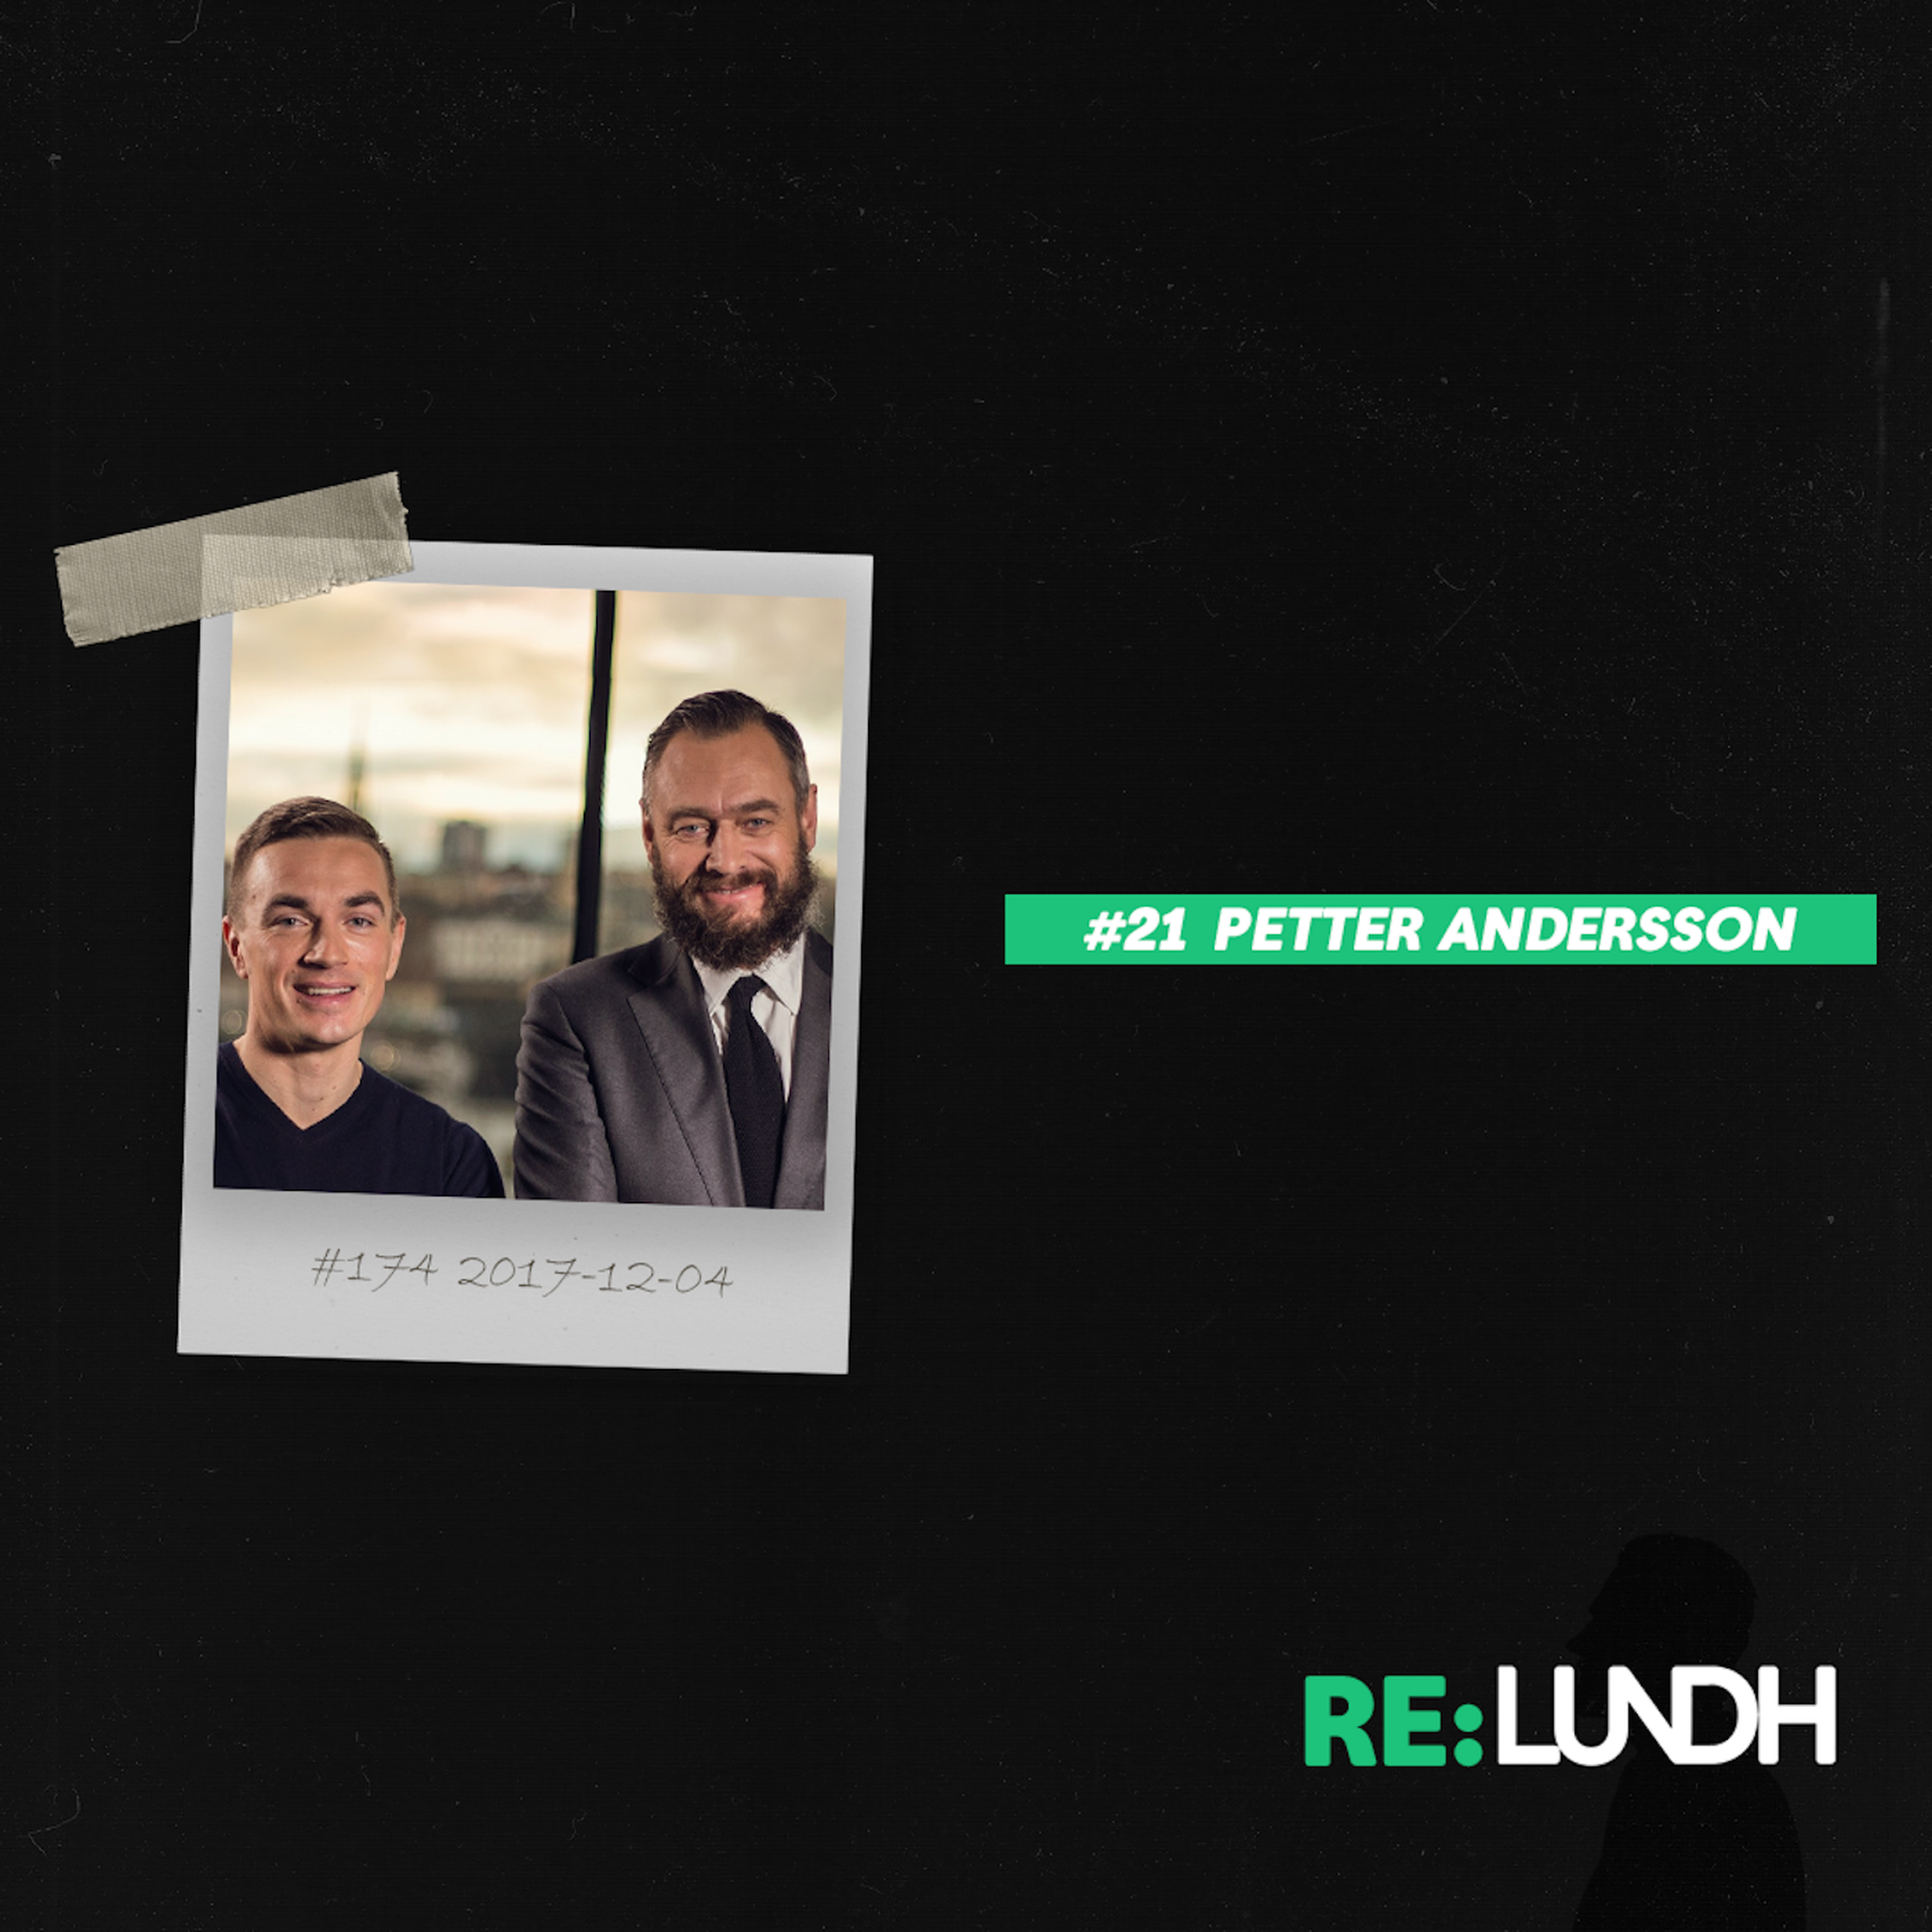 21 Re:Lundh – Petter Andersson